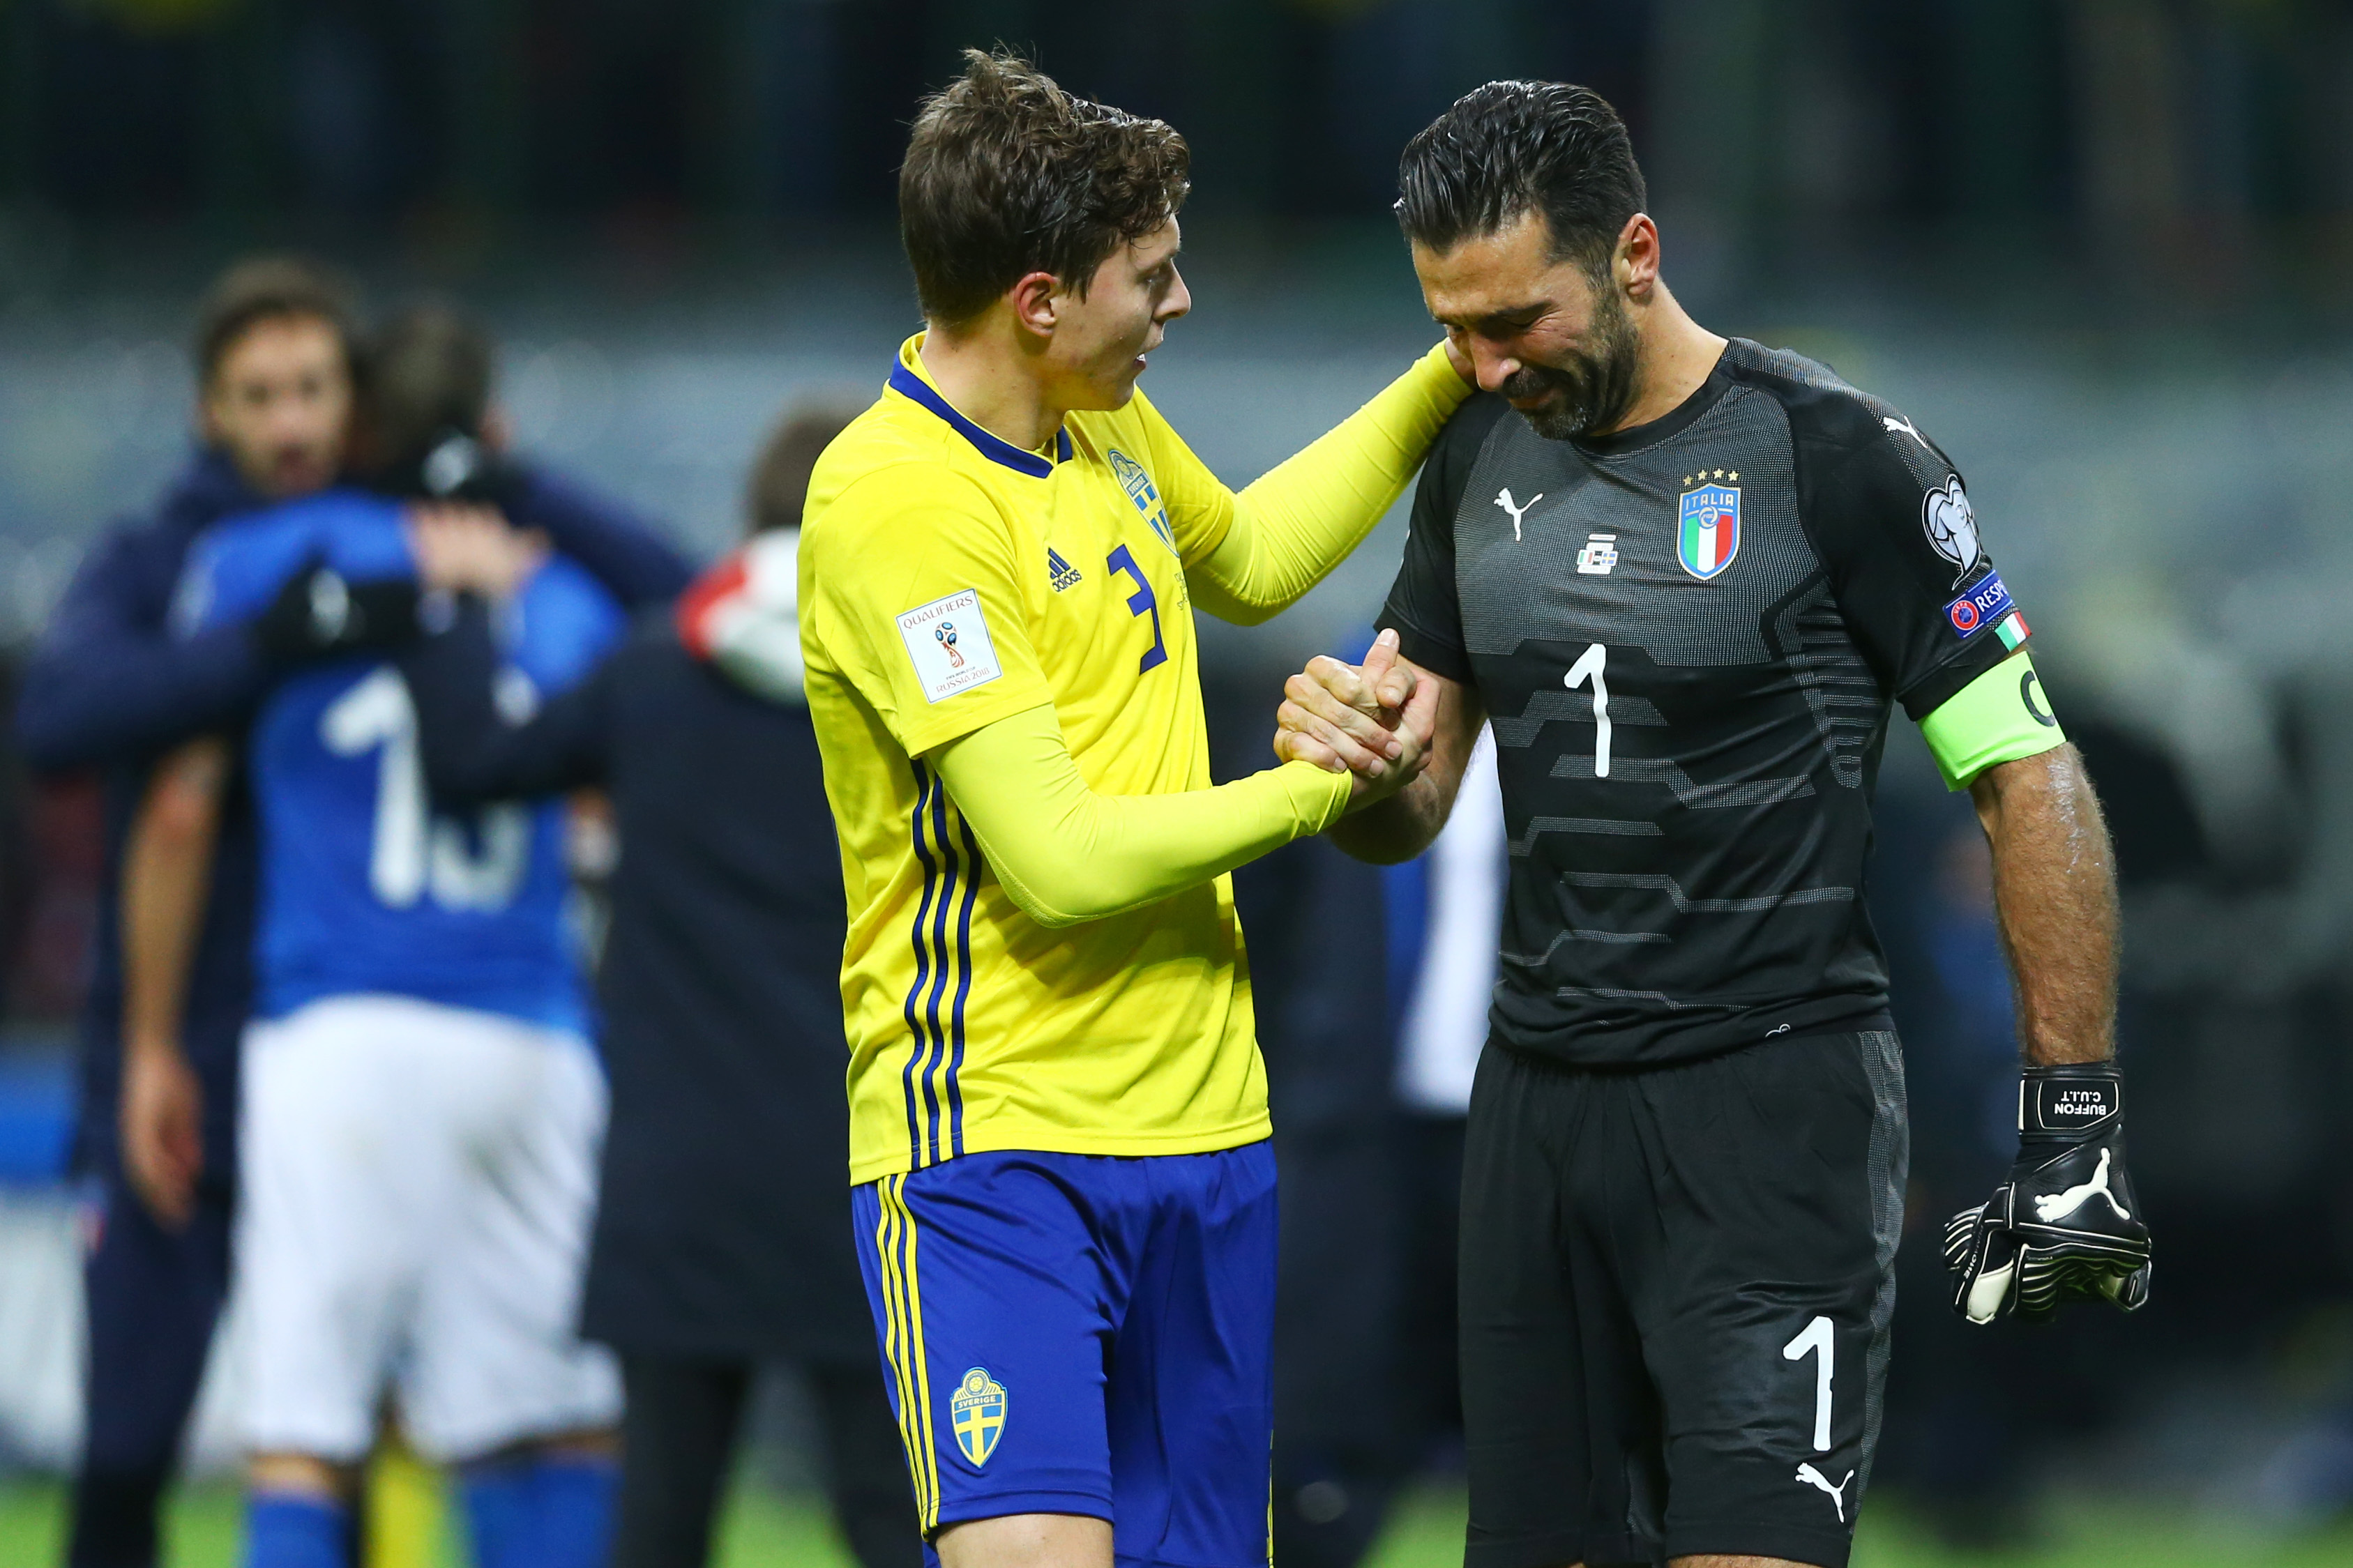 Ventura's status still in question after Italy eliminated